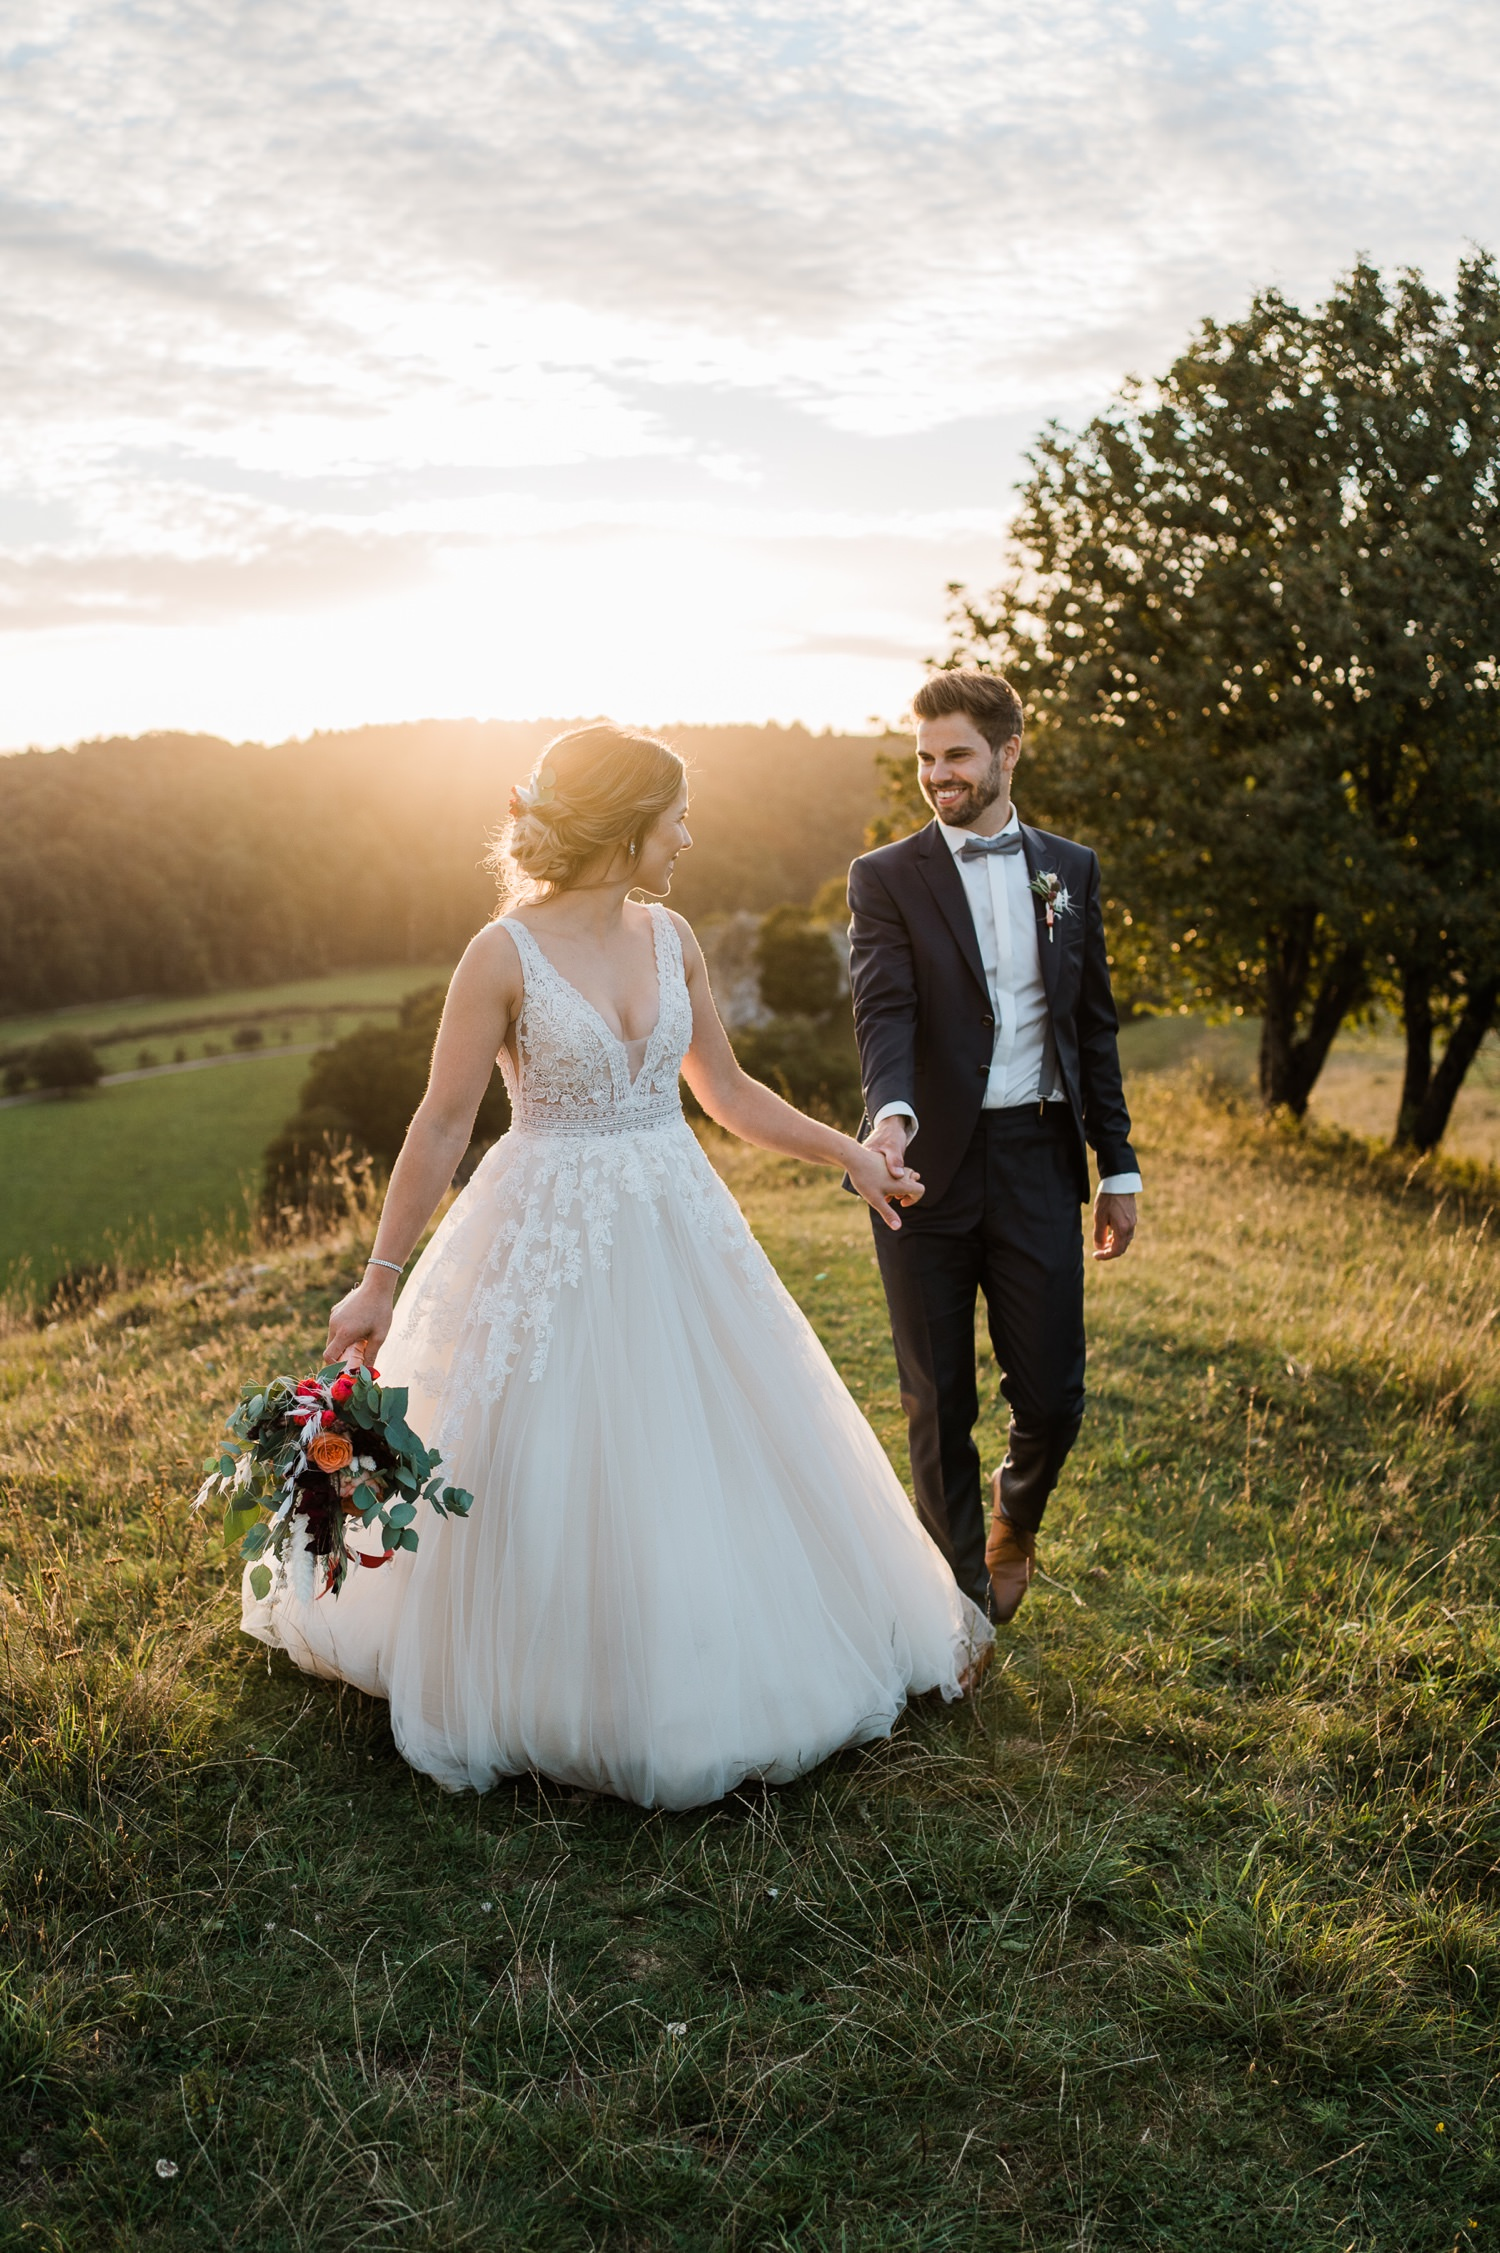 After Wedding Shooting in Bayern